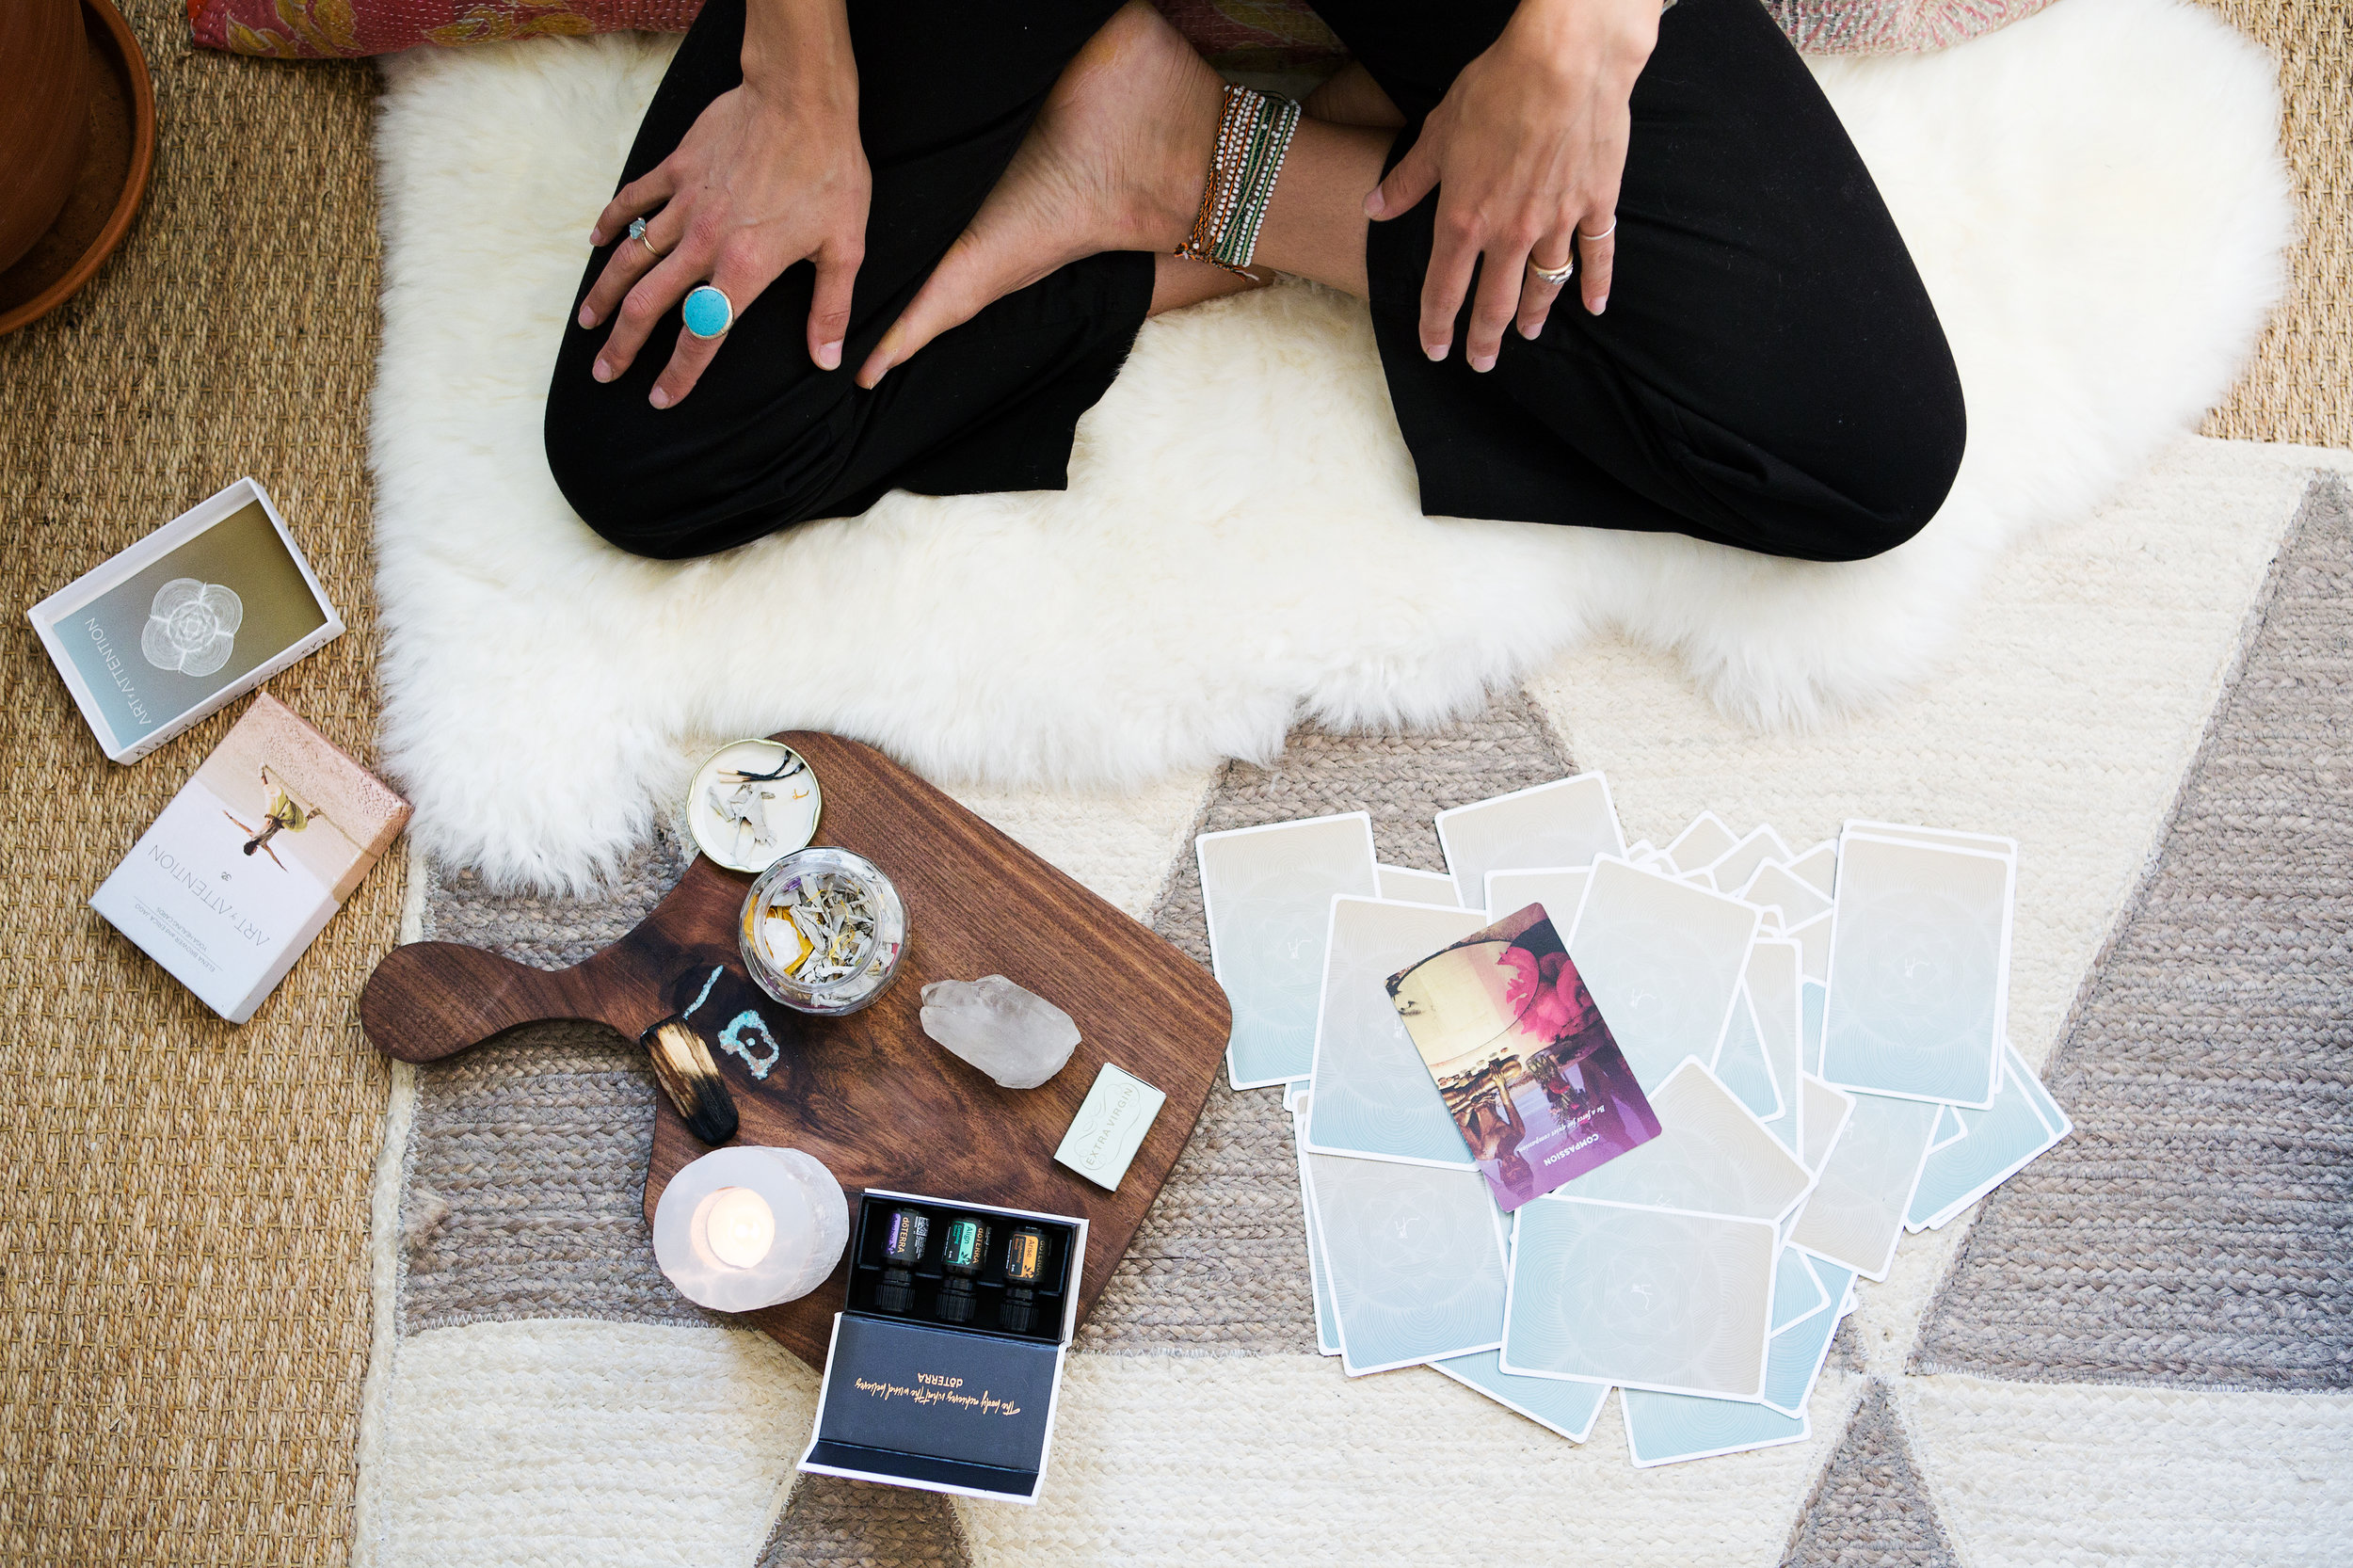 Rituals Image Heather Gallagher.jpeg